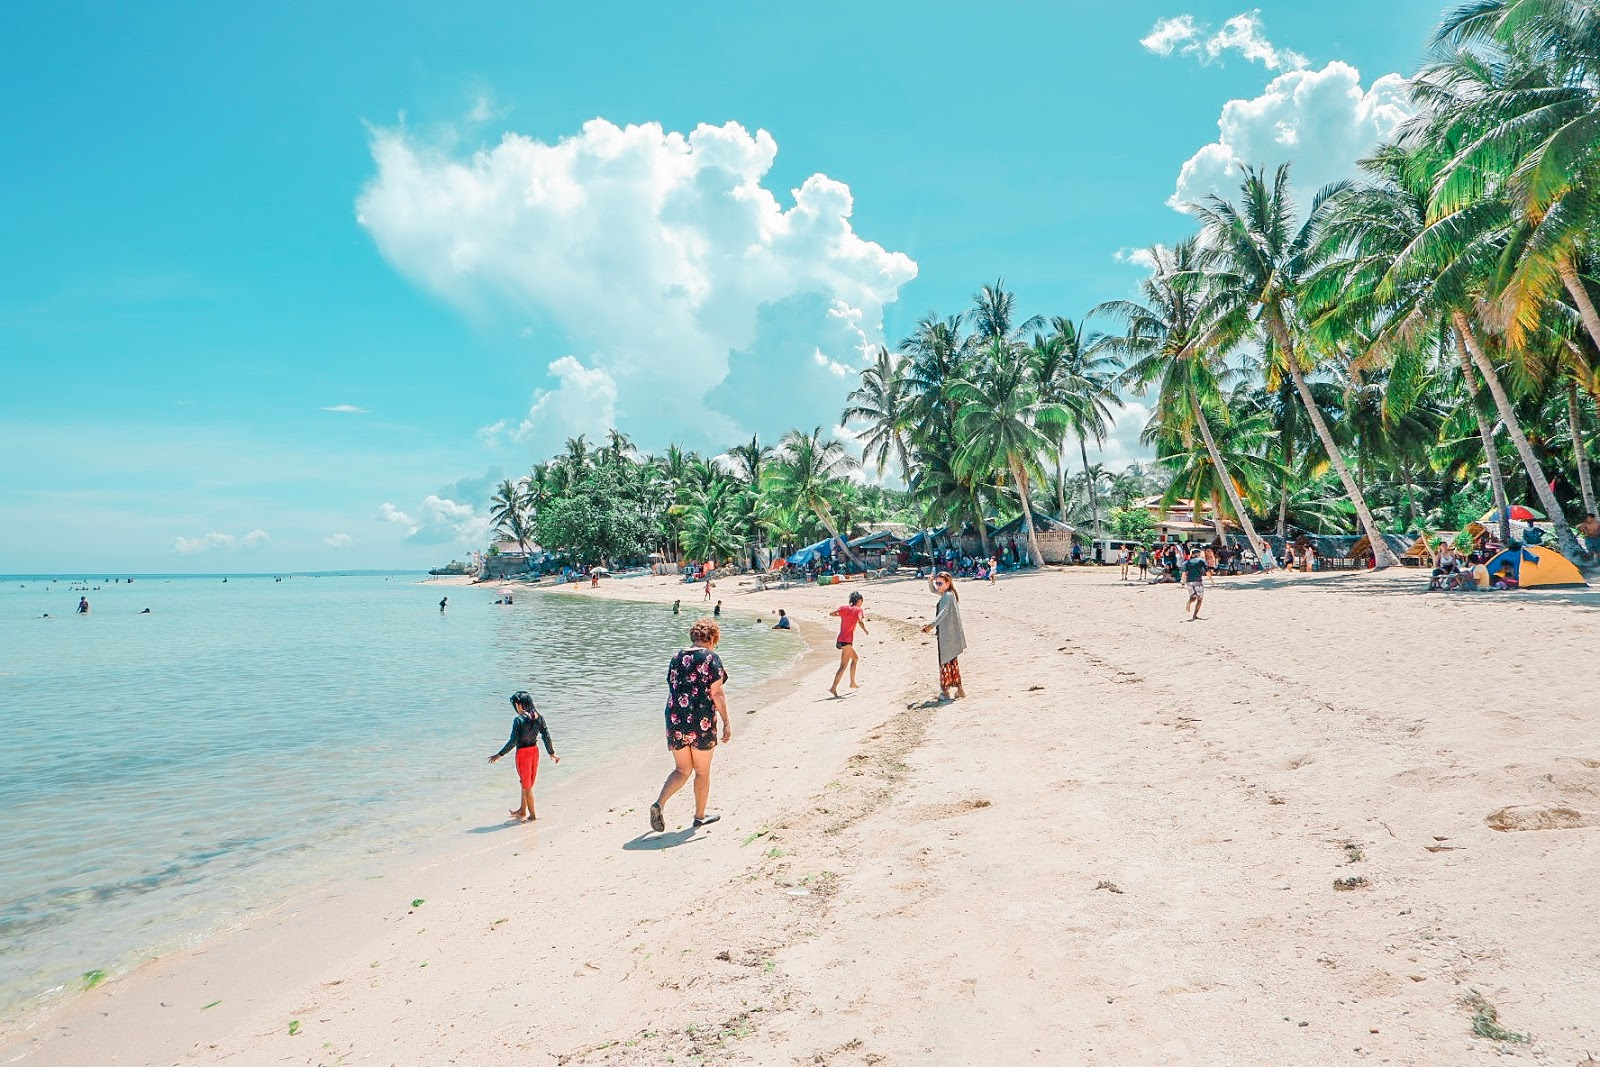 Day Trip to Maravilla Beach in Tabuelan, Cebu